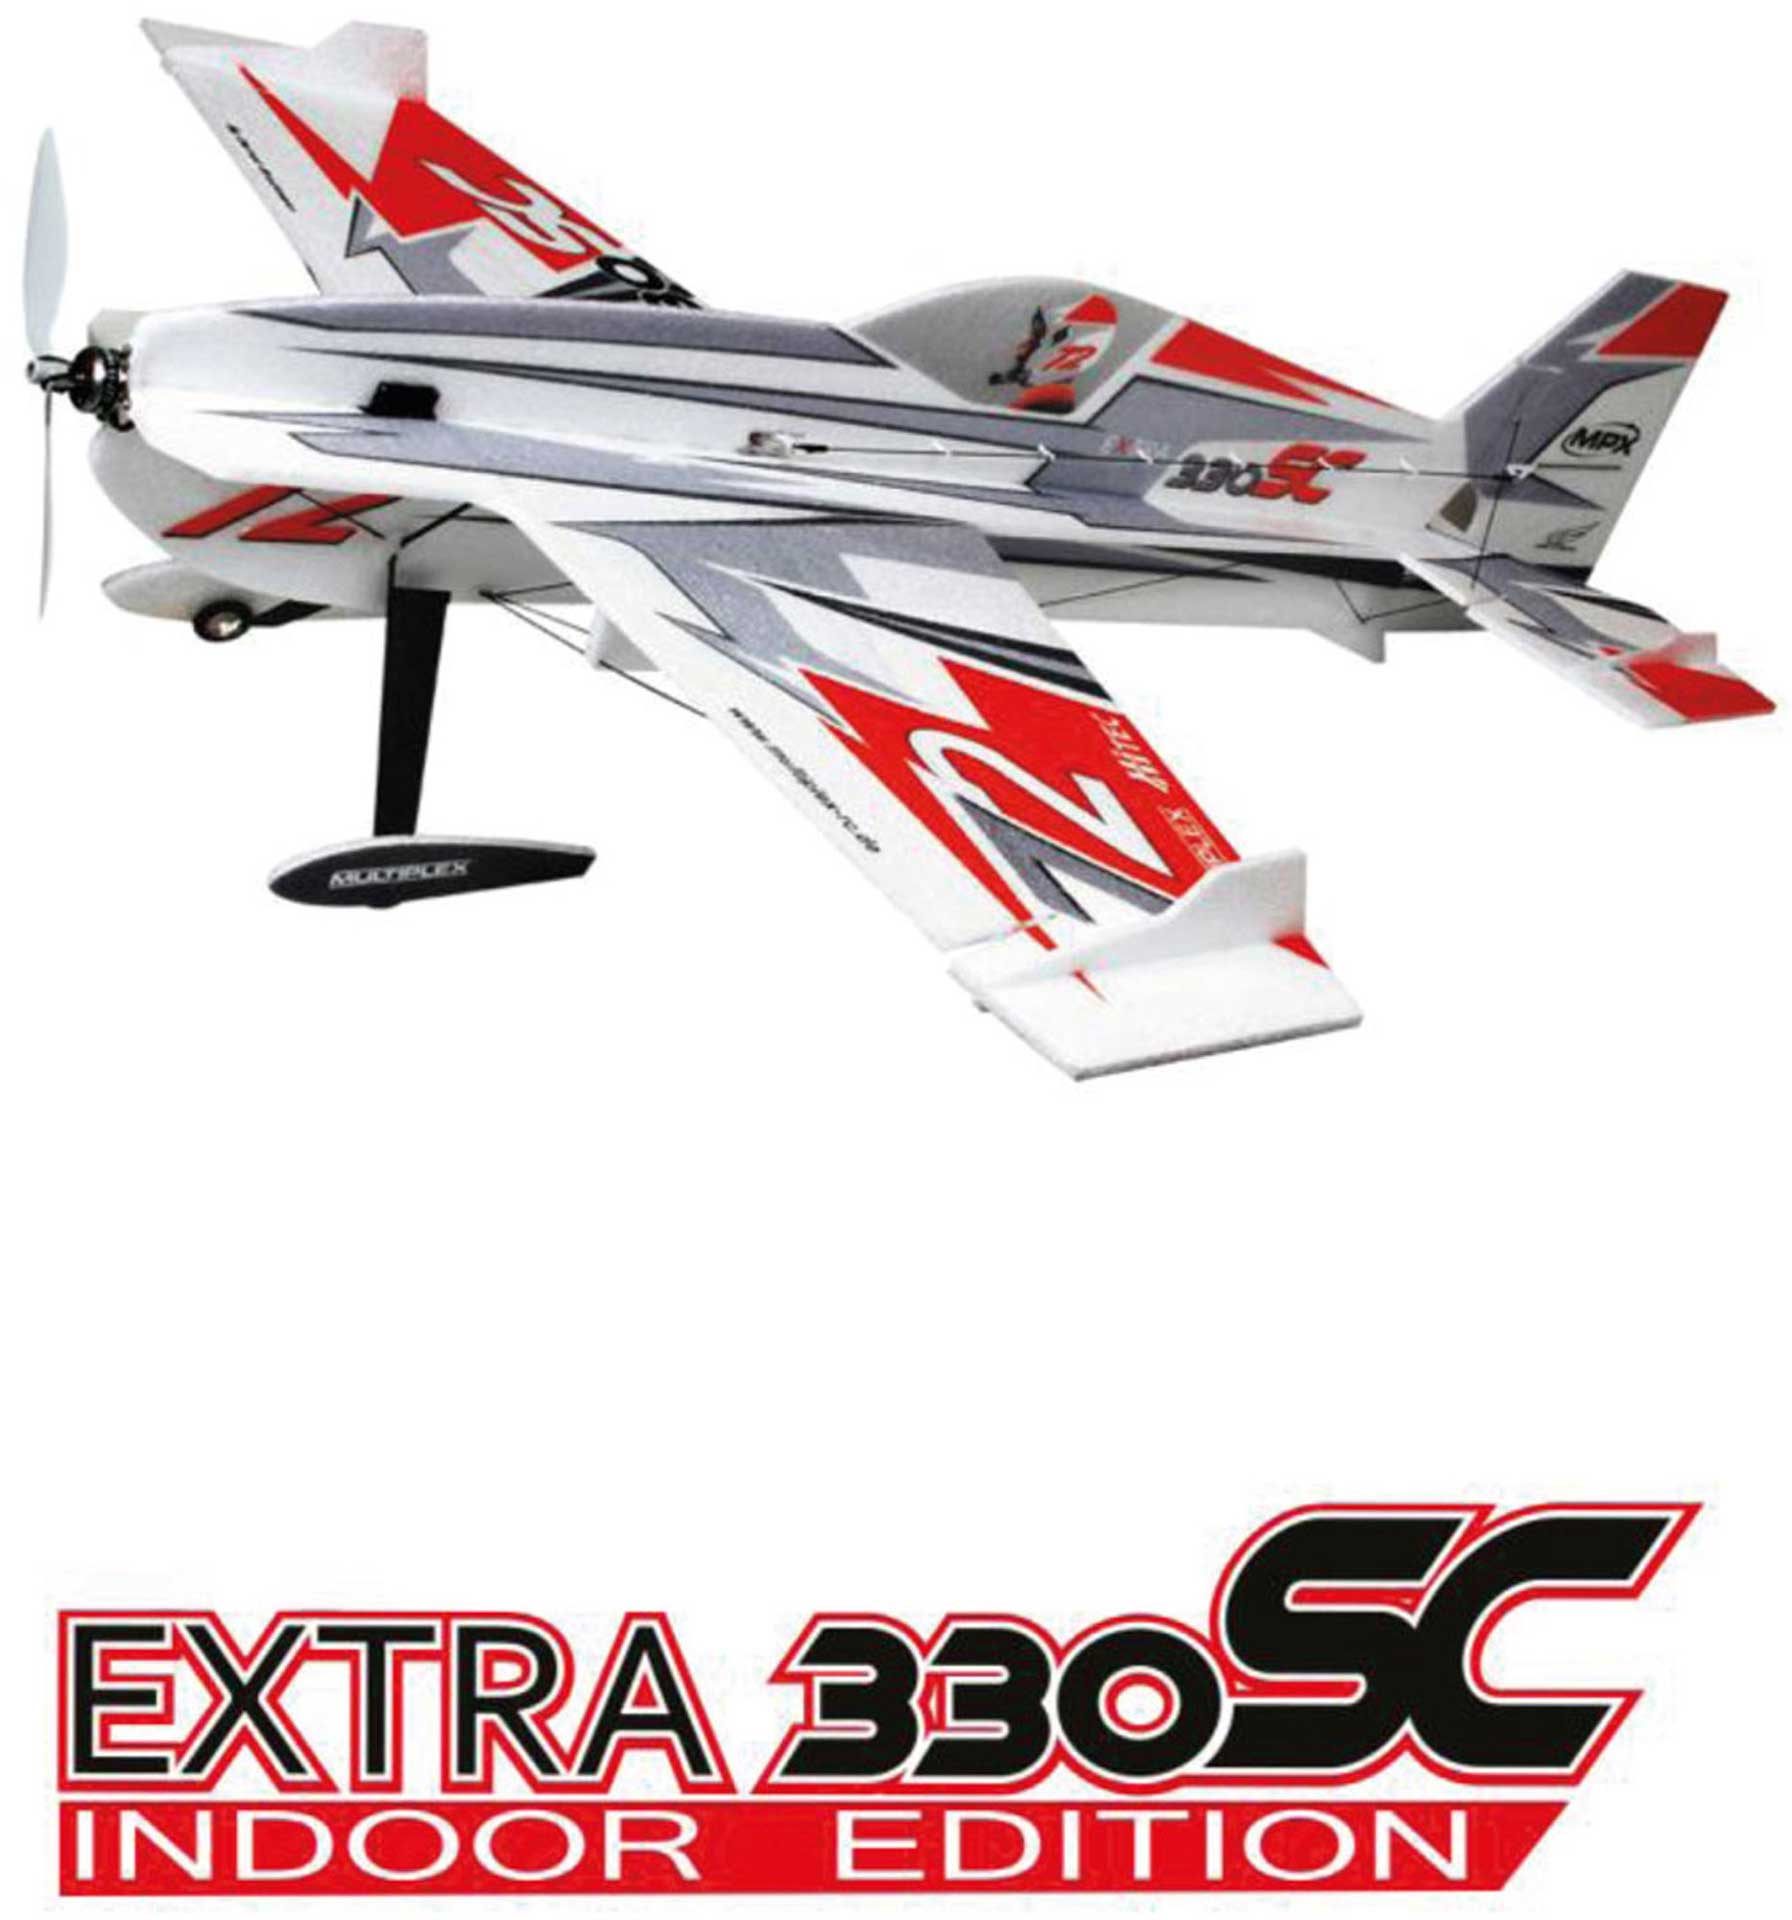 MULTIPLEX EXTRA 330SC INDOOR EDITION SILVER (SILVER/RED)